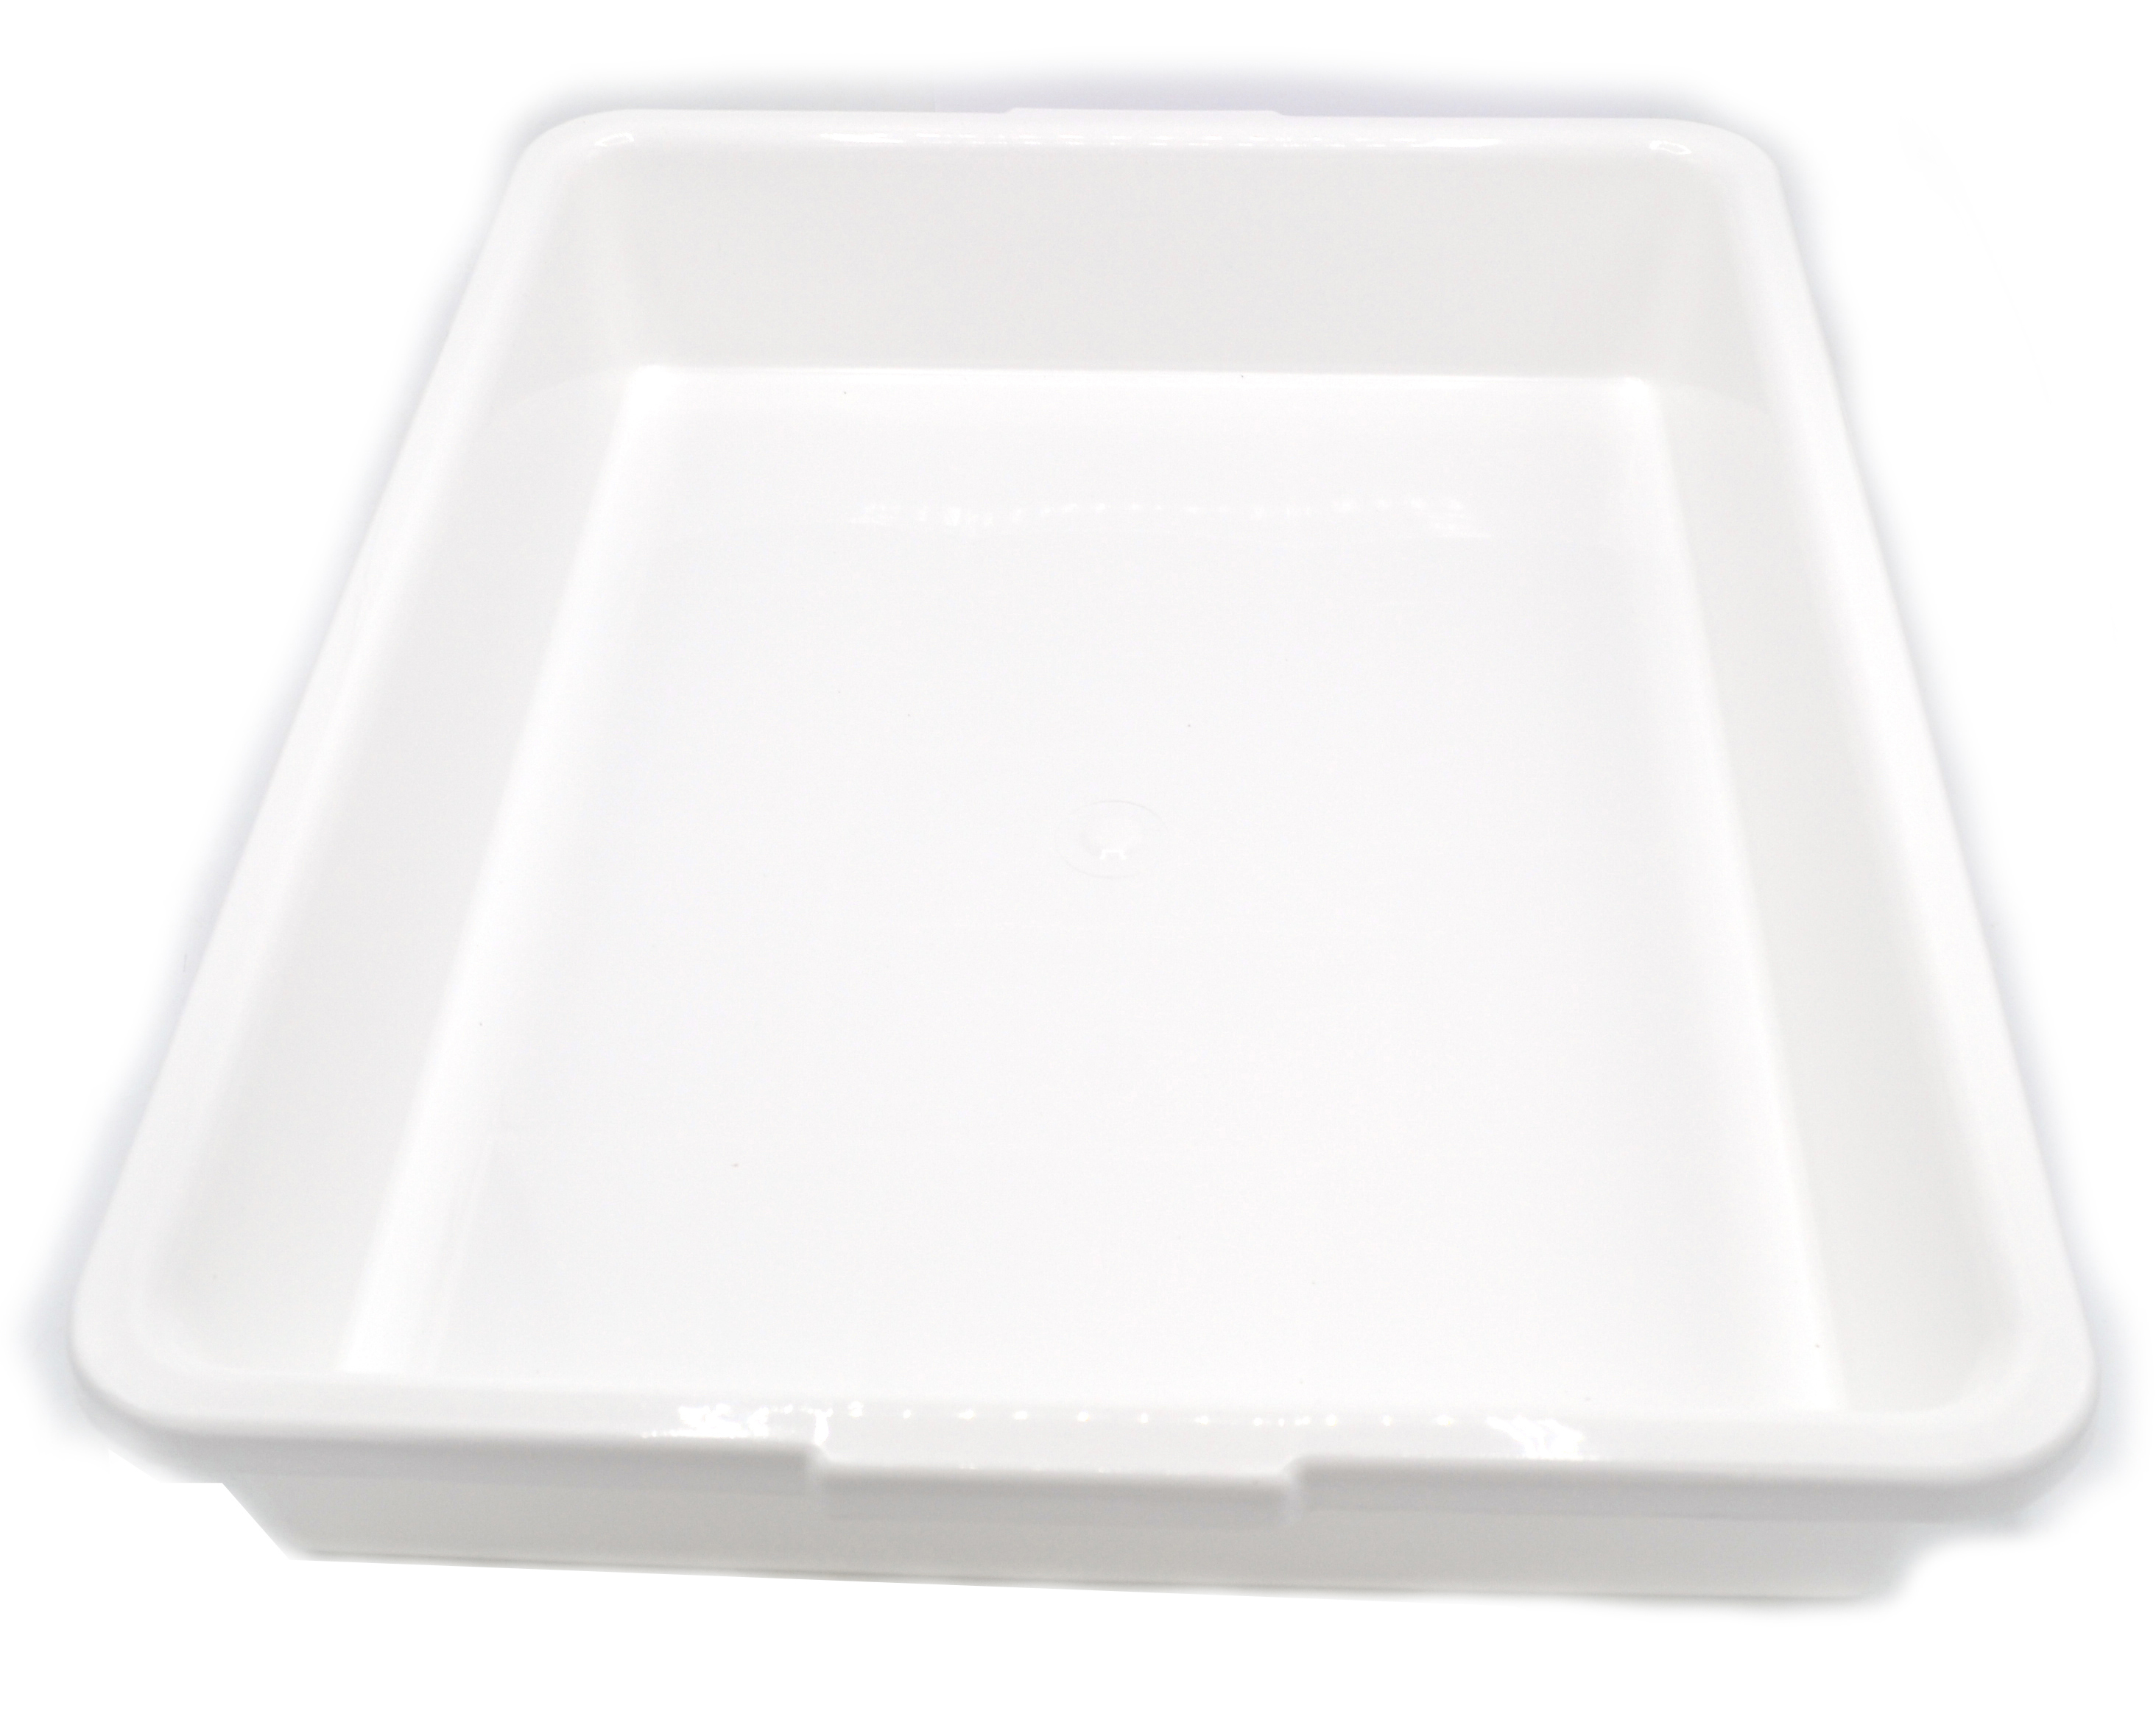 Stainless Steel SALE Shell Gastro Tray CA 33,5 x 23,5 x 1 cm Plate 86